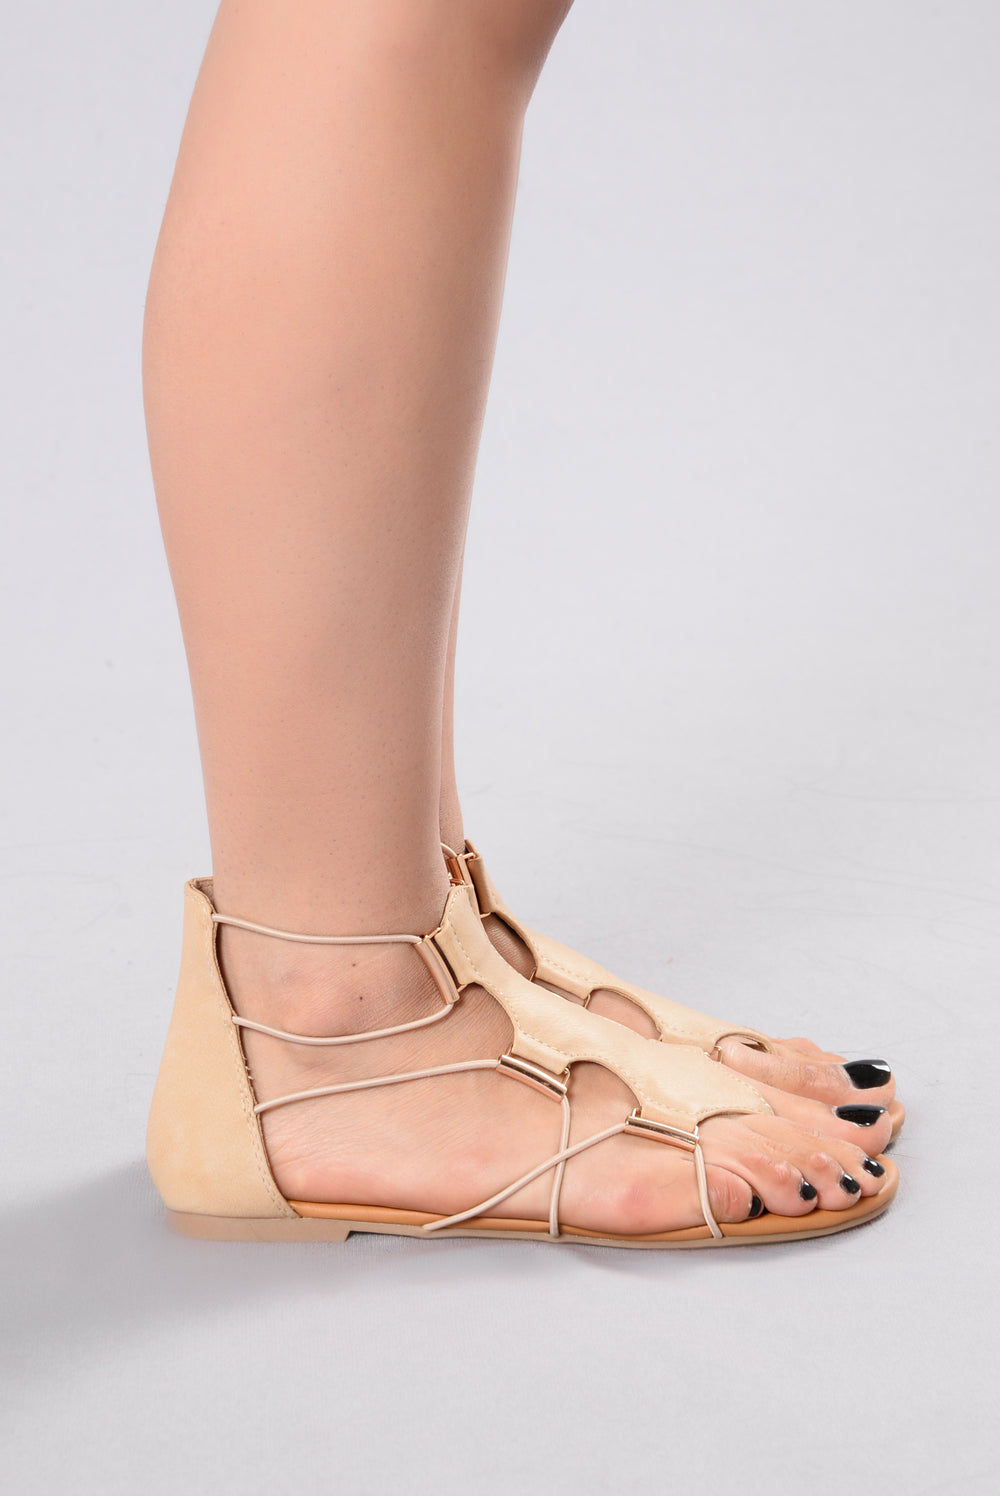 Totally Normal Sandal - Natural